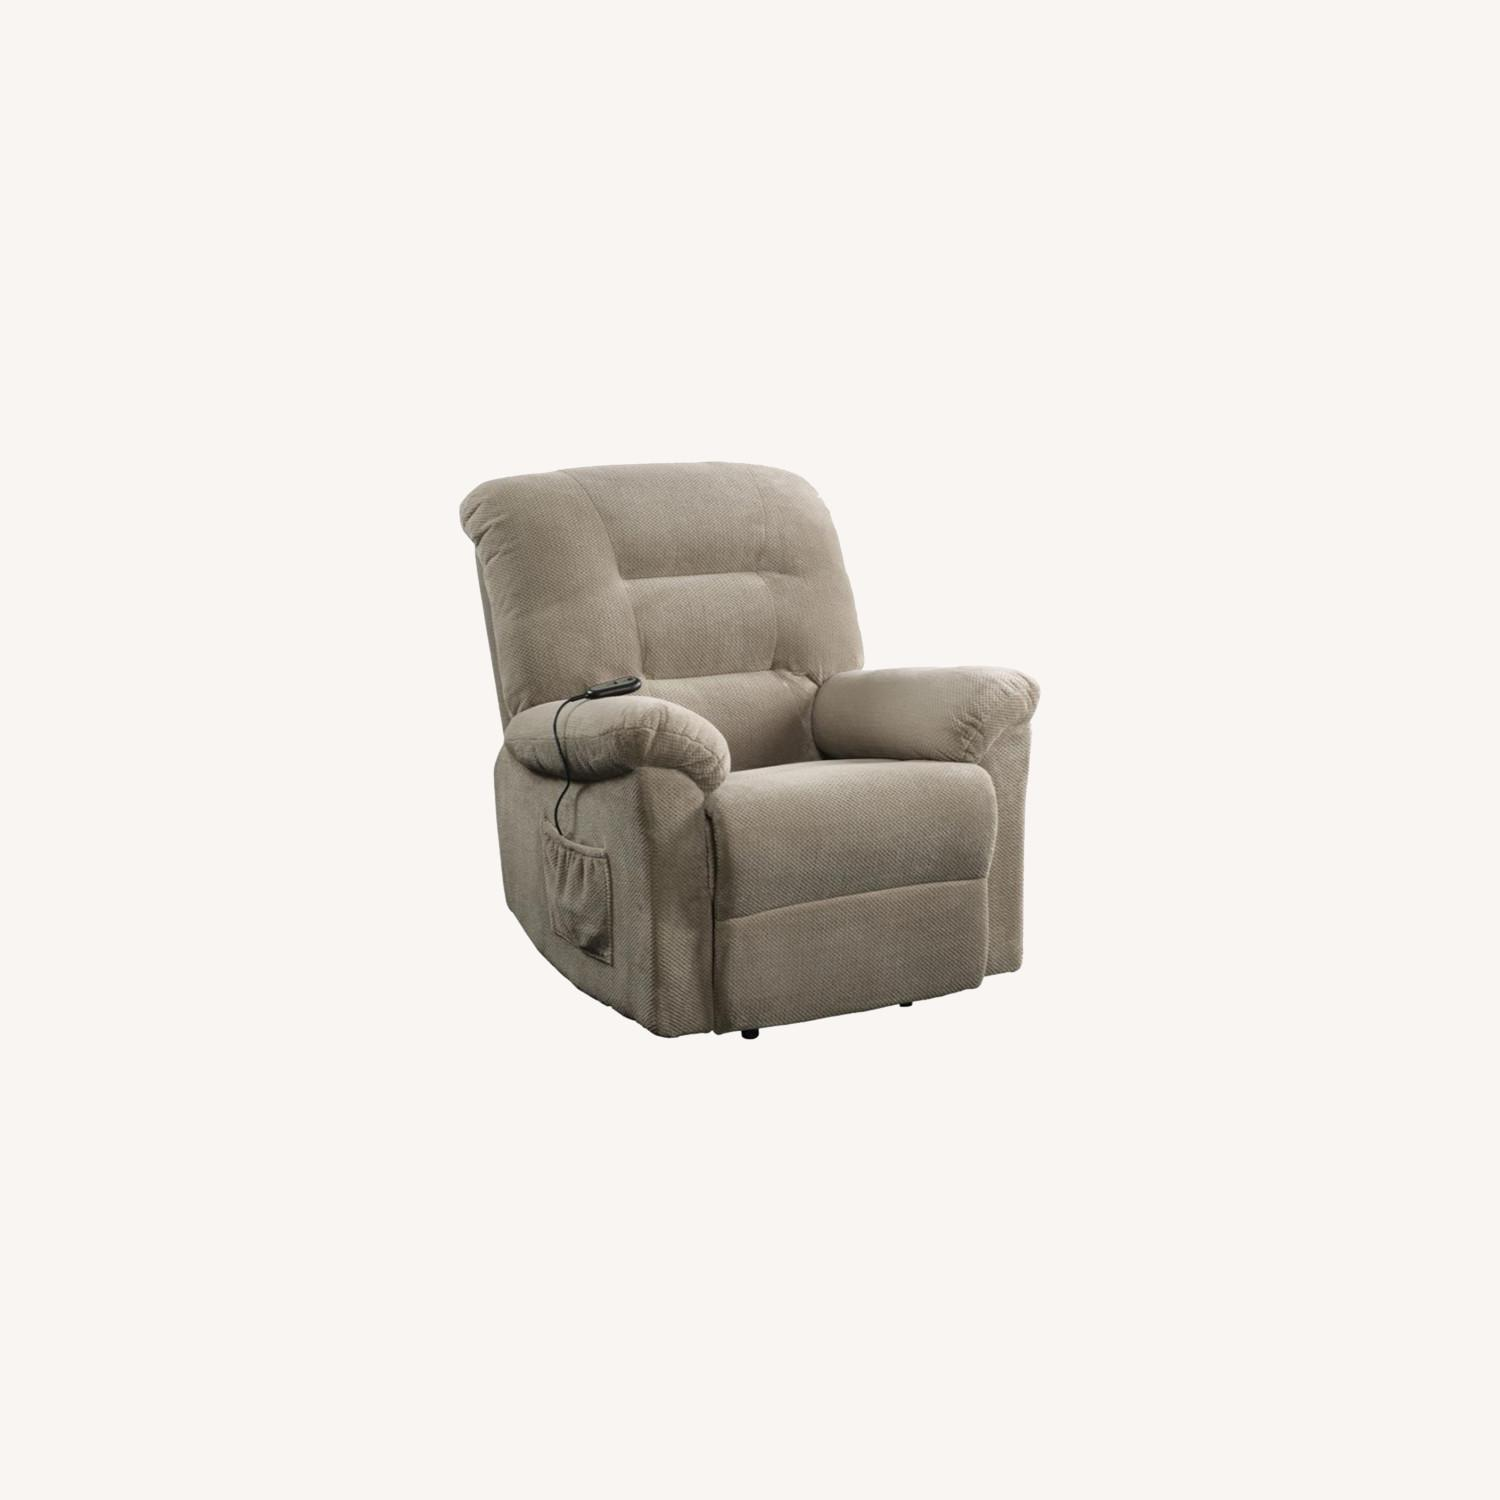 Power Lift Recliner In Beige Chenille Fabric - image-8